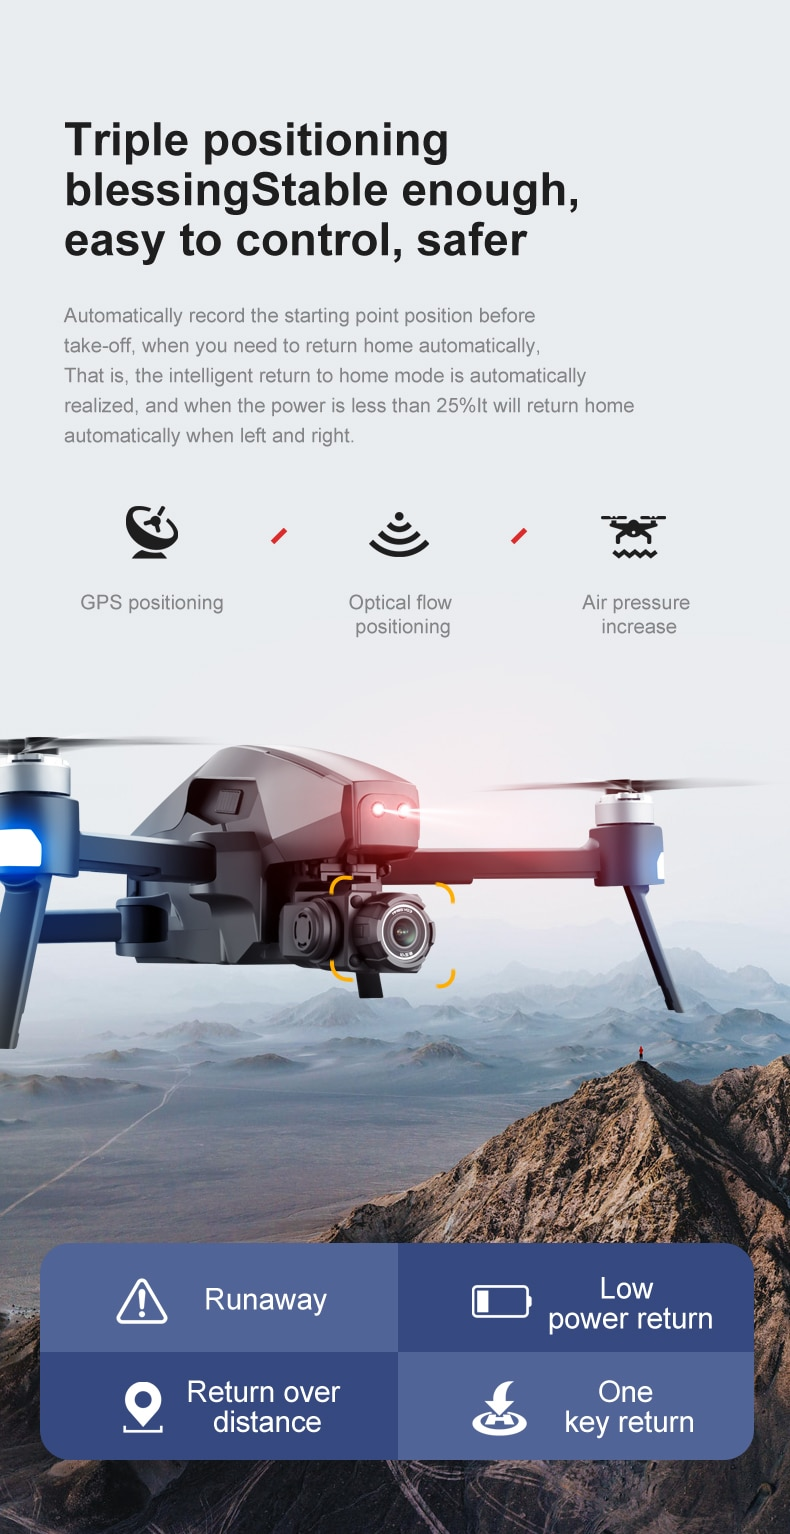 U91d7850bc38643489de438cb652e35e8v - 2021 M1 Pro 2 drone 4k HD mechanical 2-Axis gimbal camera 5G wifi gps system supports TF card drones distance 1.6km